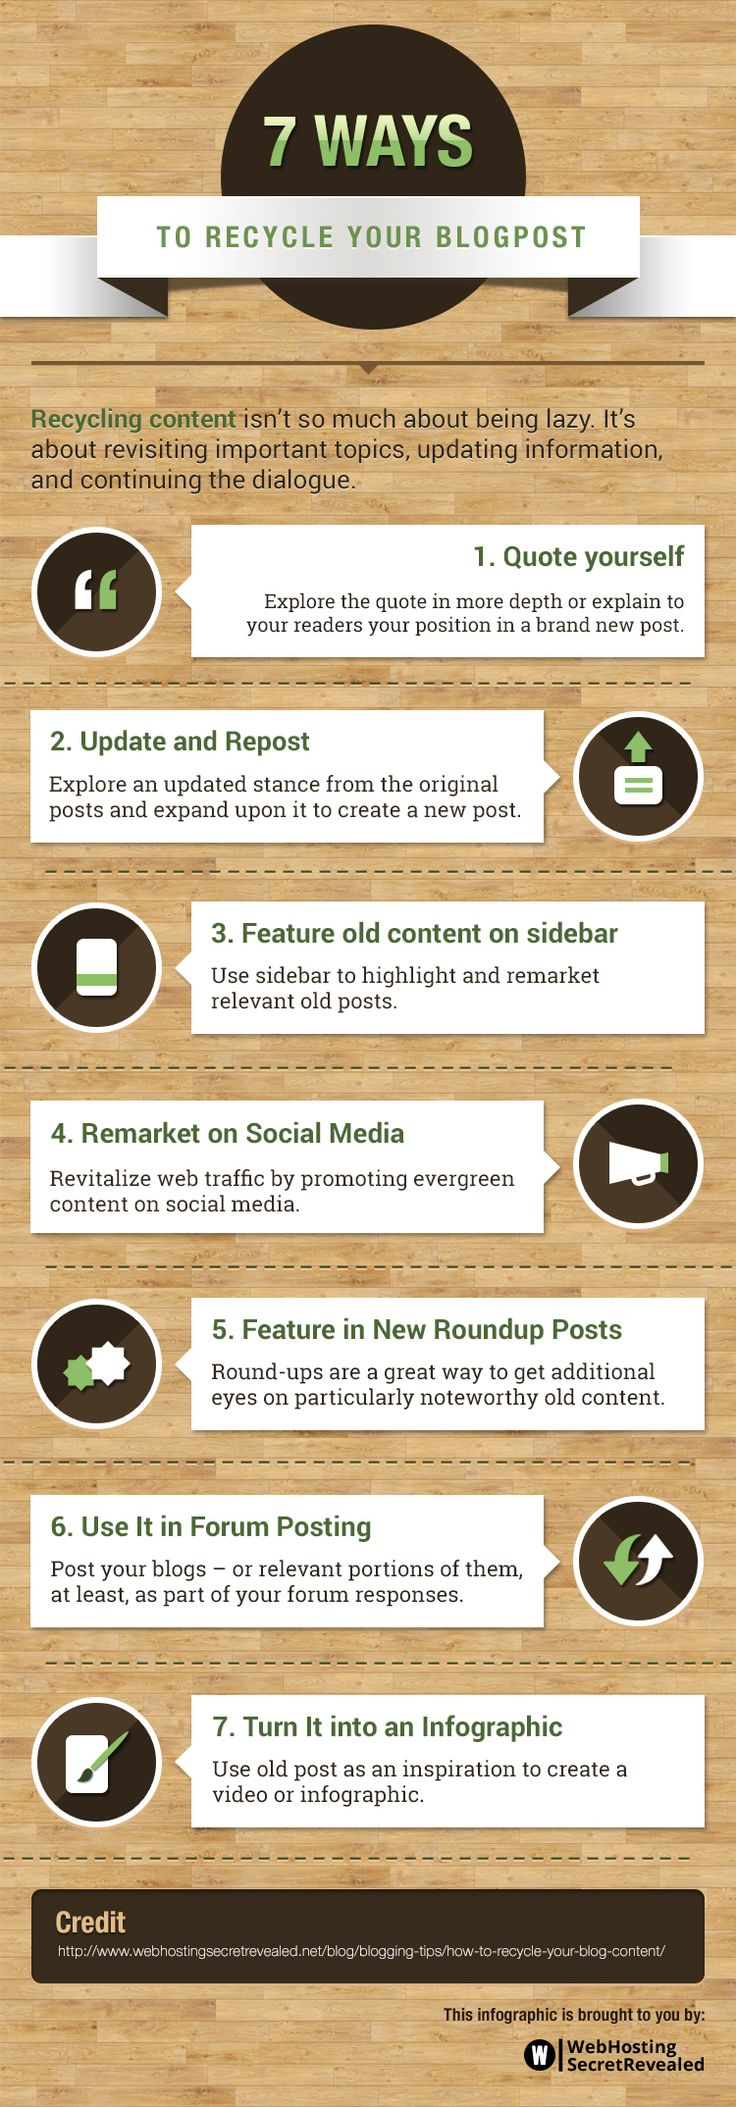 this infographic shows you how to recycle epic blog posts to get more value from them